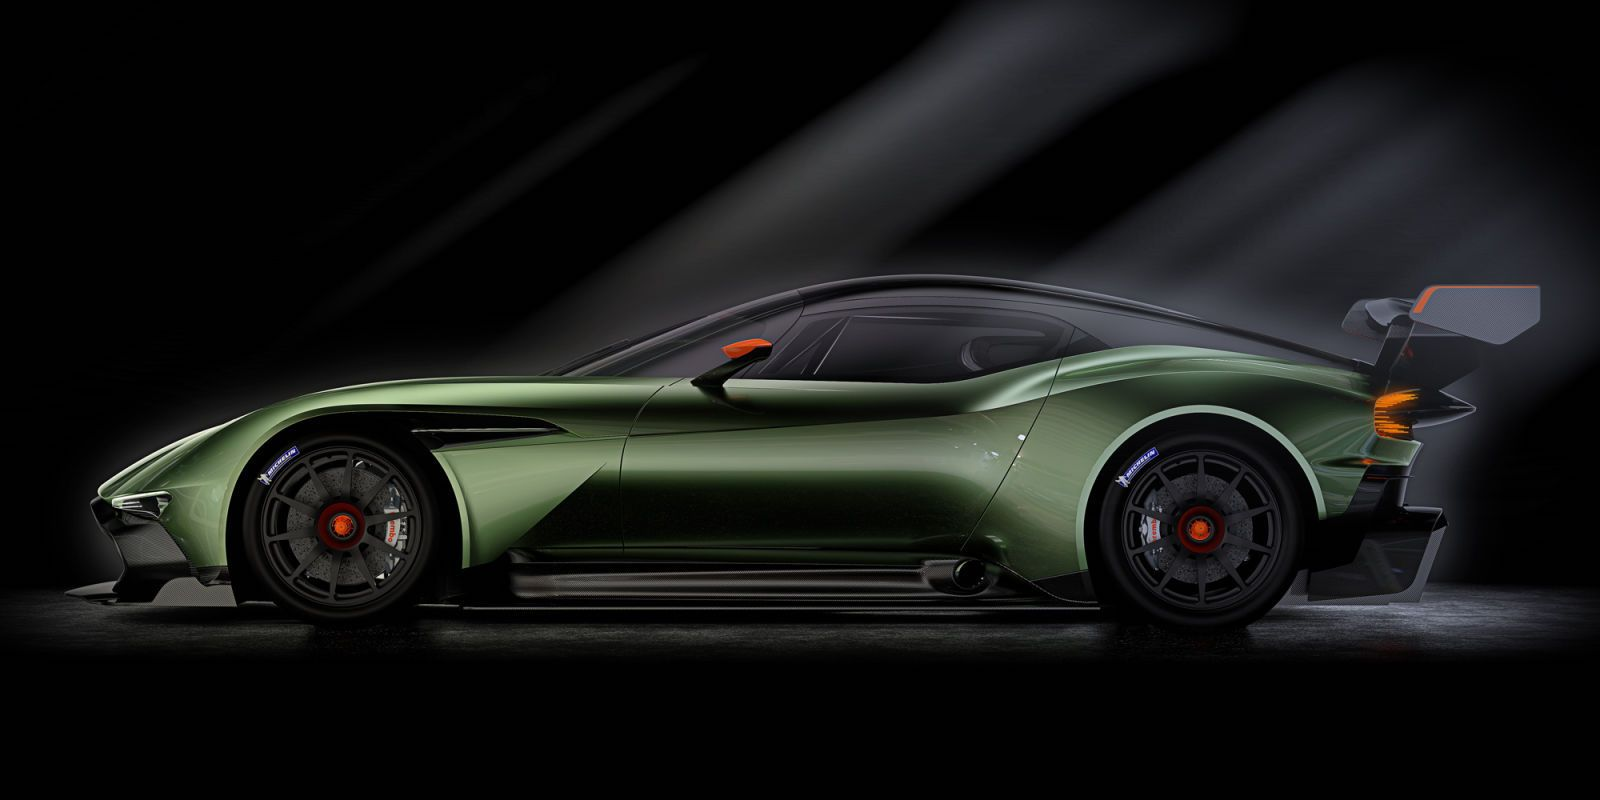 Aston Martin S Vulcan Is A Farewell To The Naturally Aspirated V12